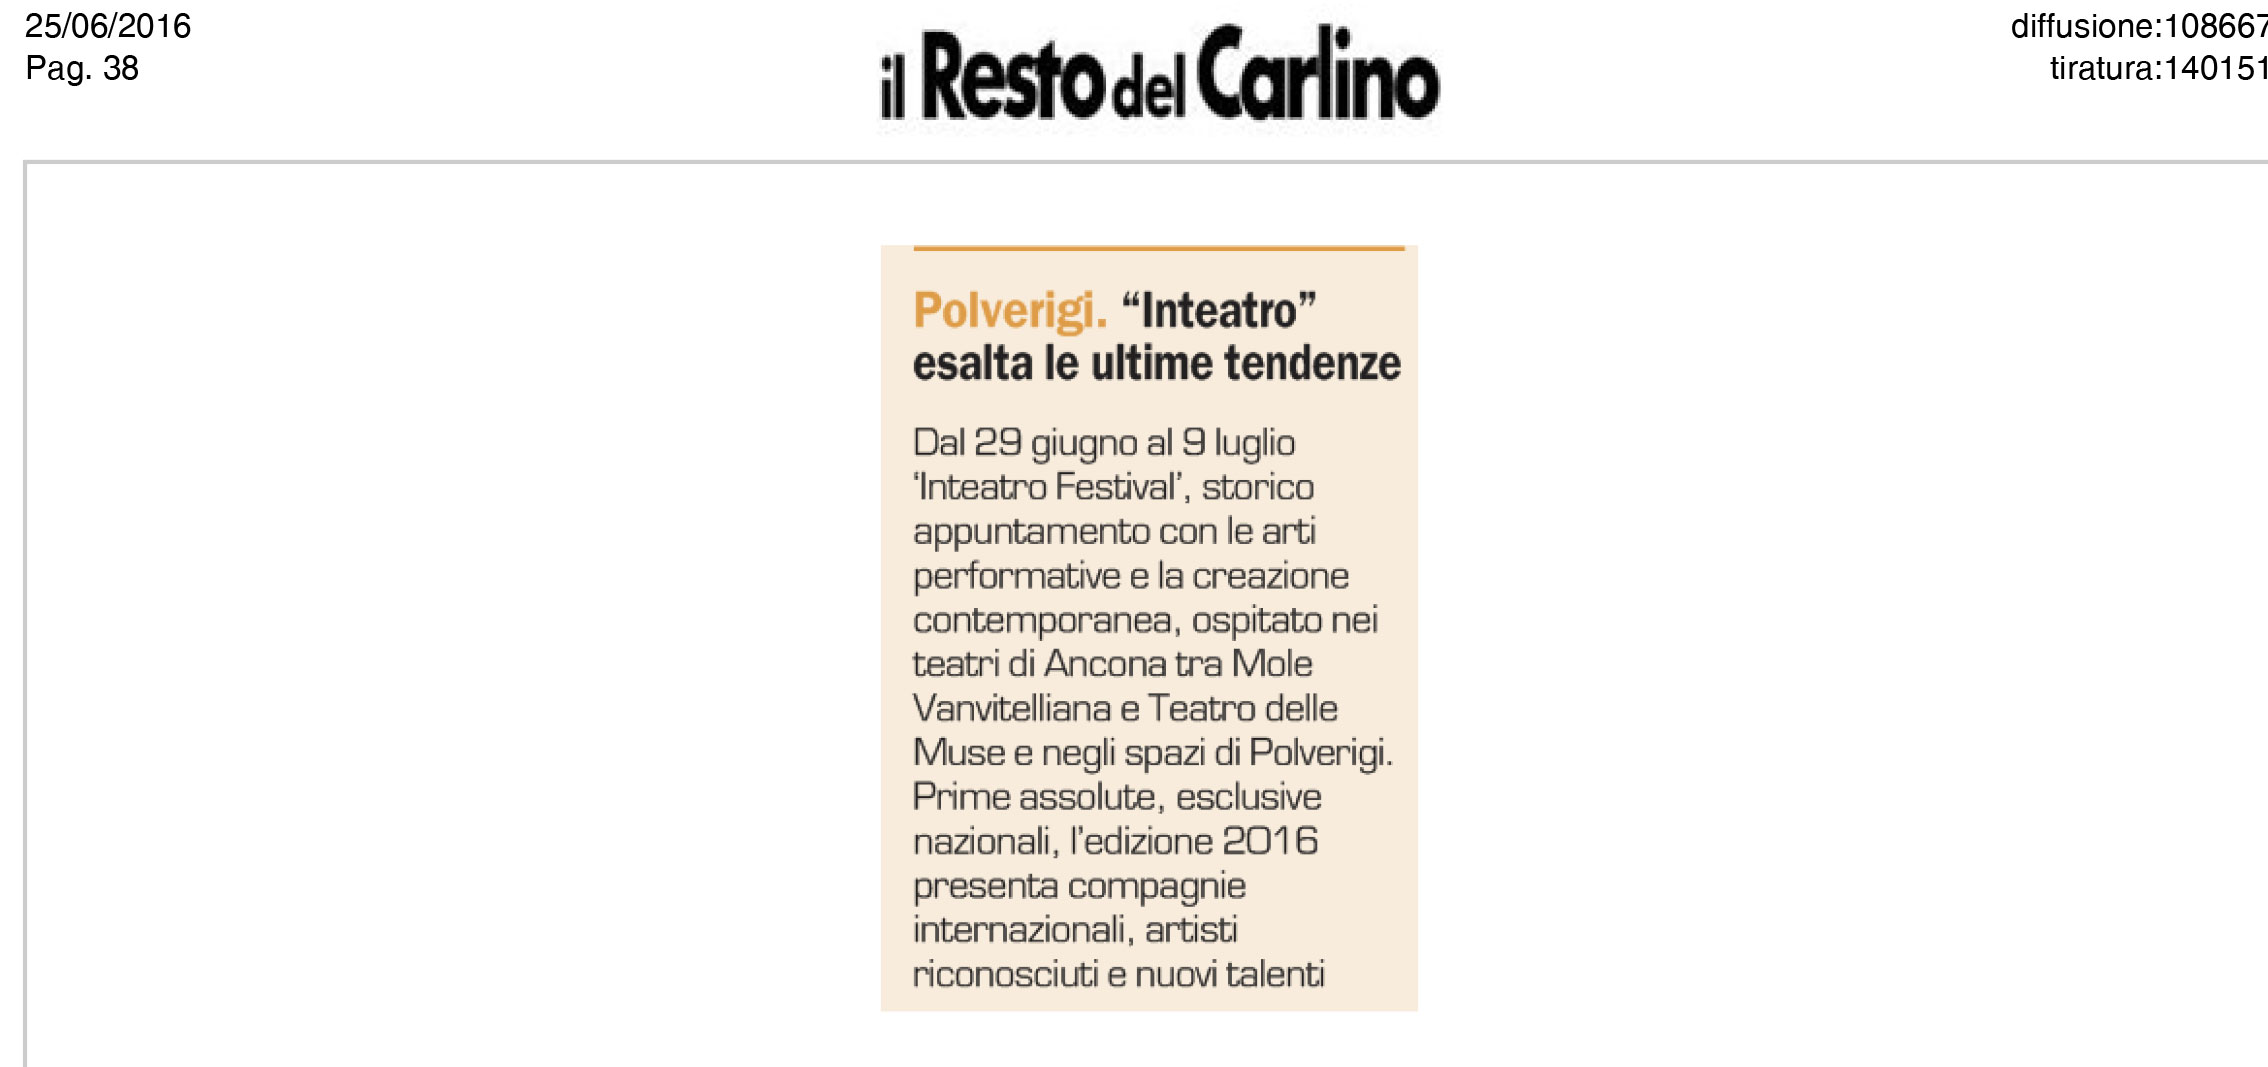 20160625_Poverigi-inteatro-esalta-le-ultime-tendenze_il-resto-del-carlino